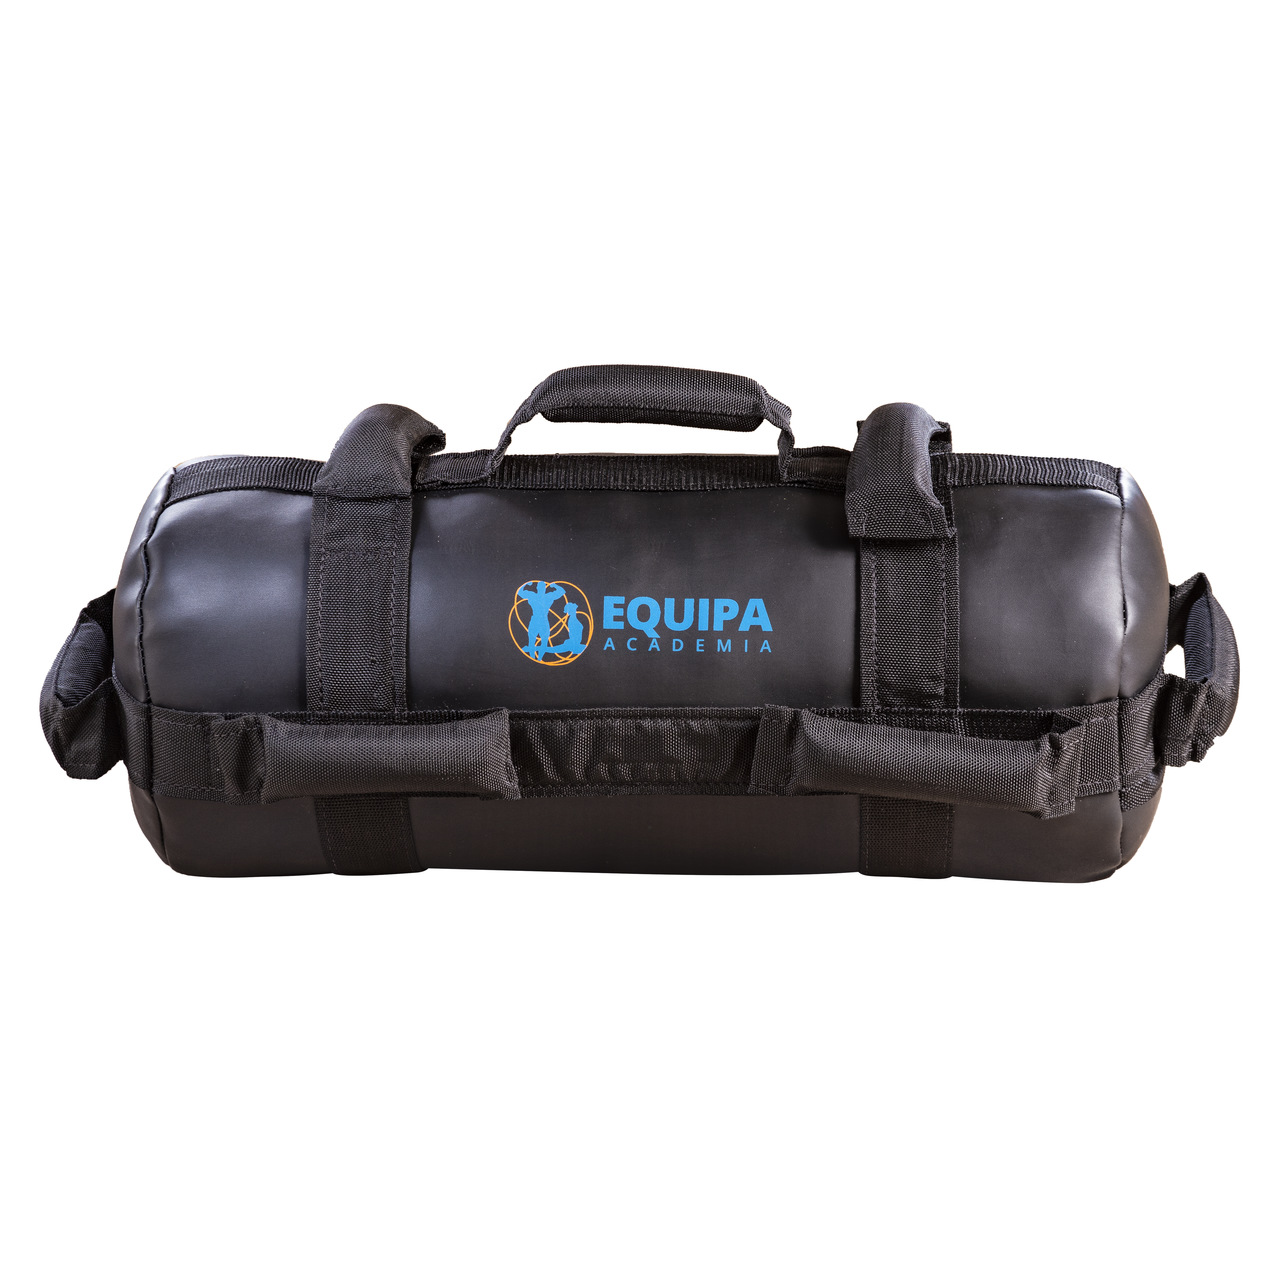 Kit Corda Naval 40MM 10Metros + Sand Bag 15kg